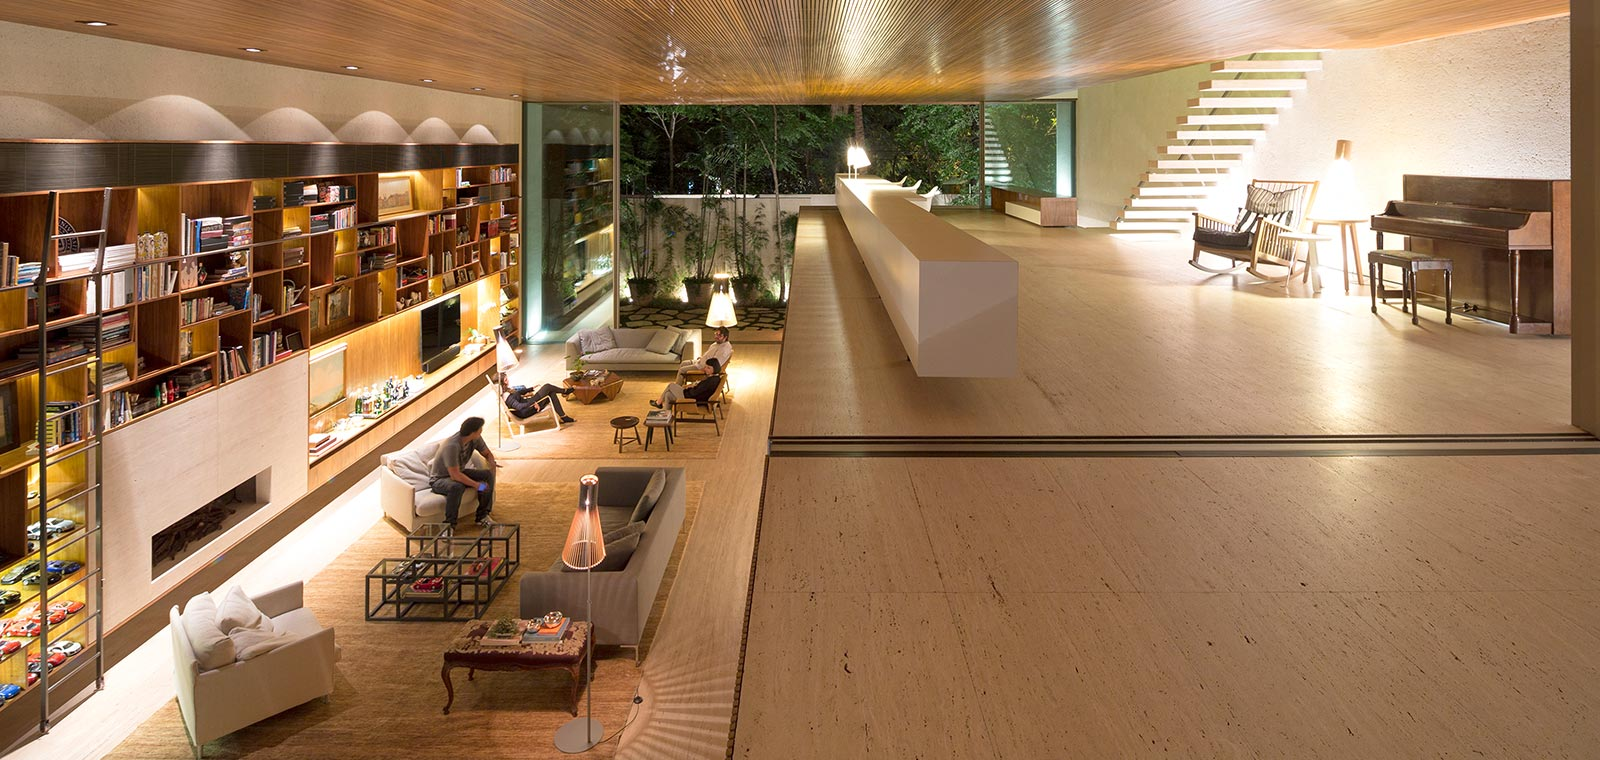 A modern Brazilian home organized just like the classic arcade game